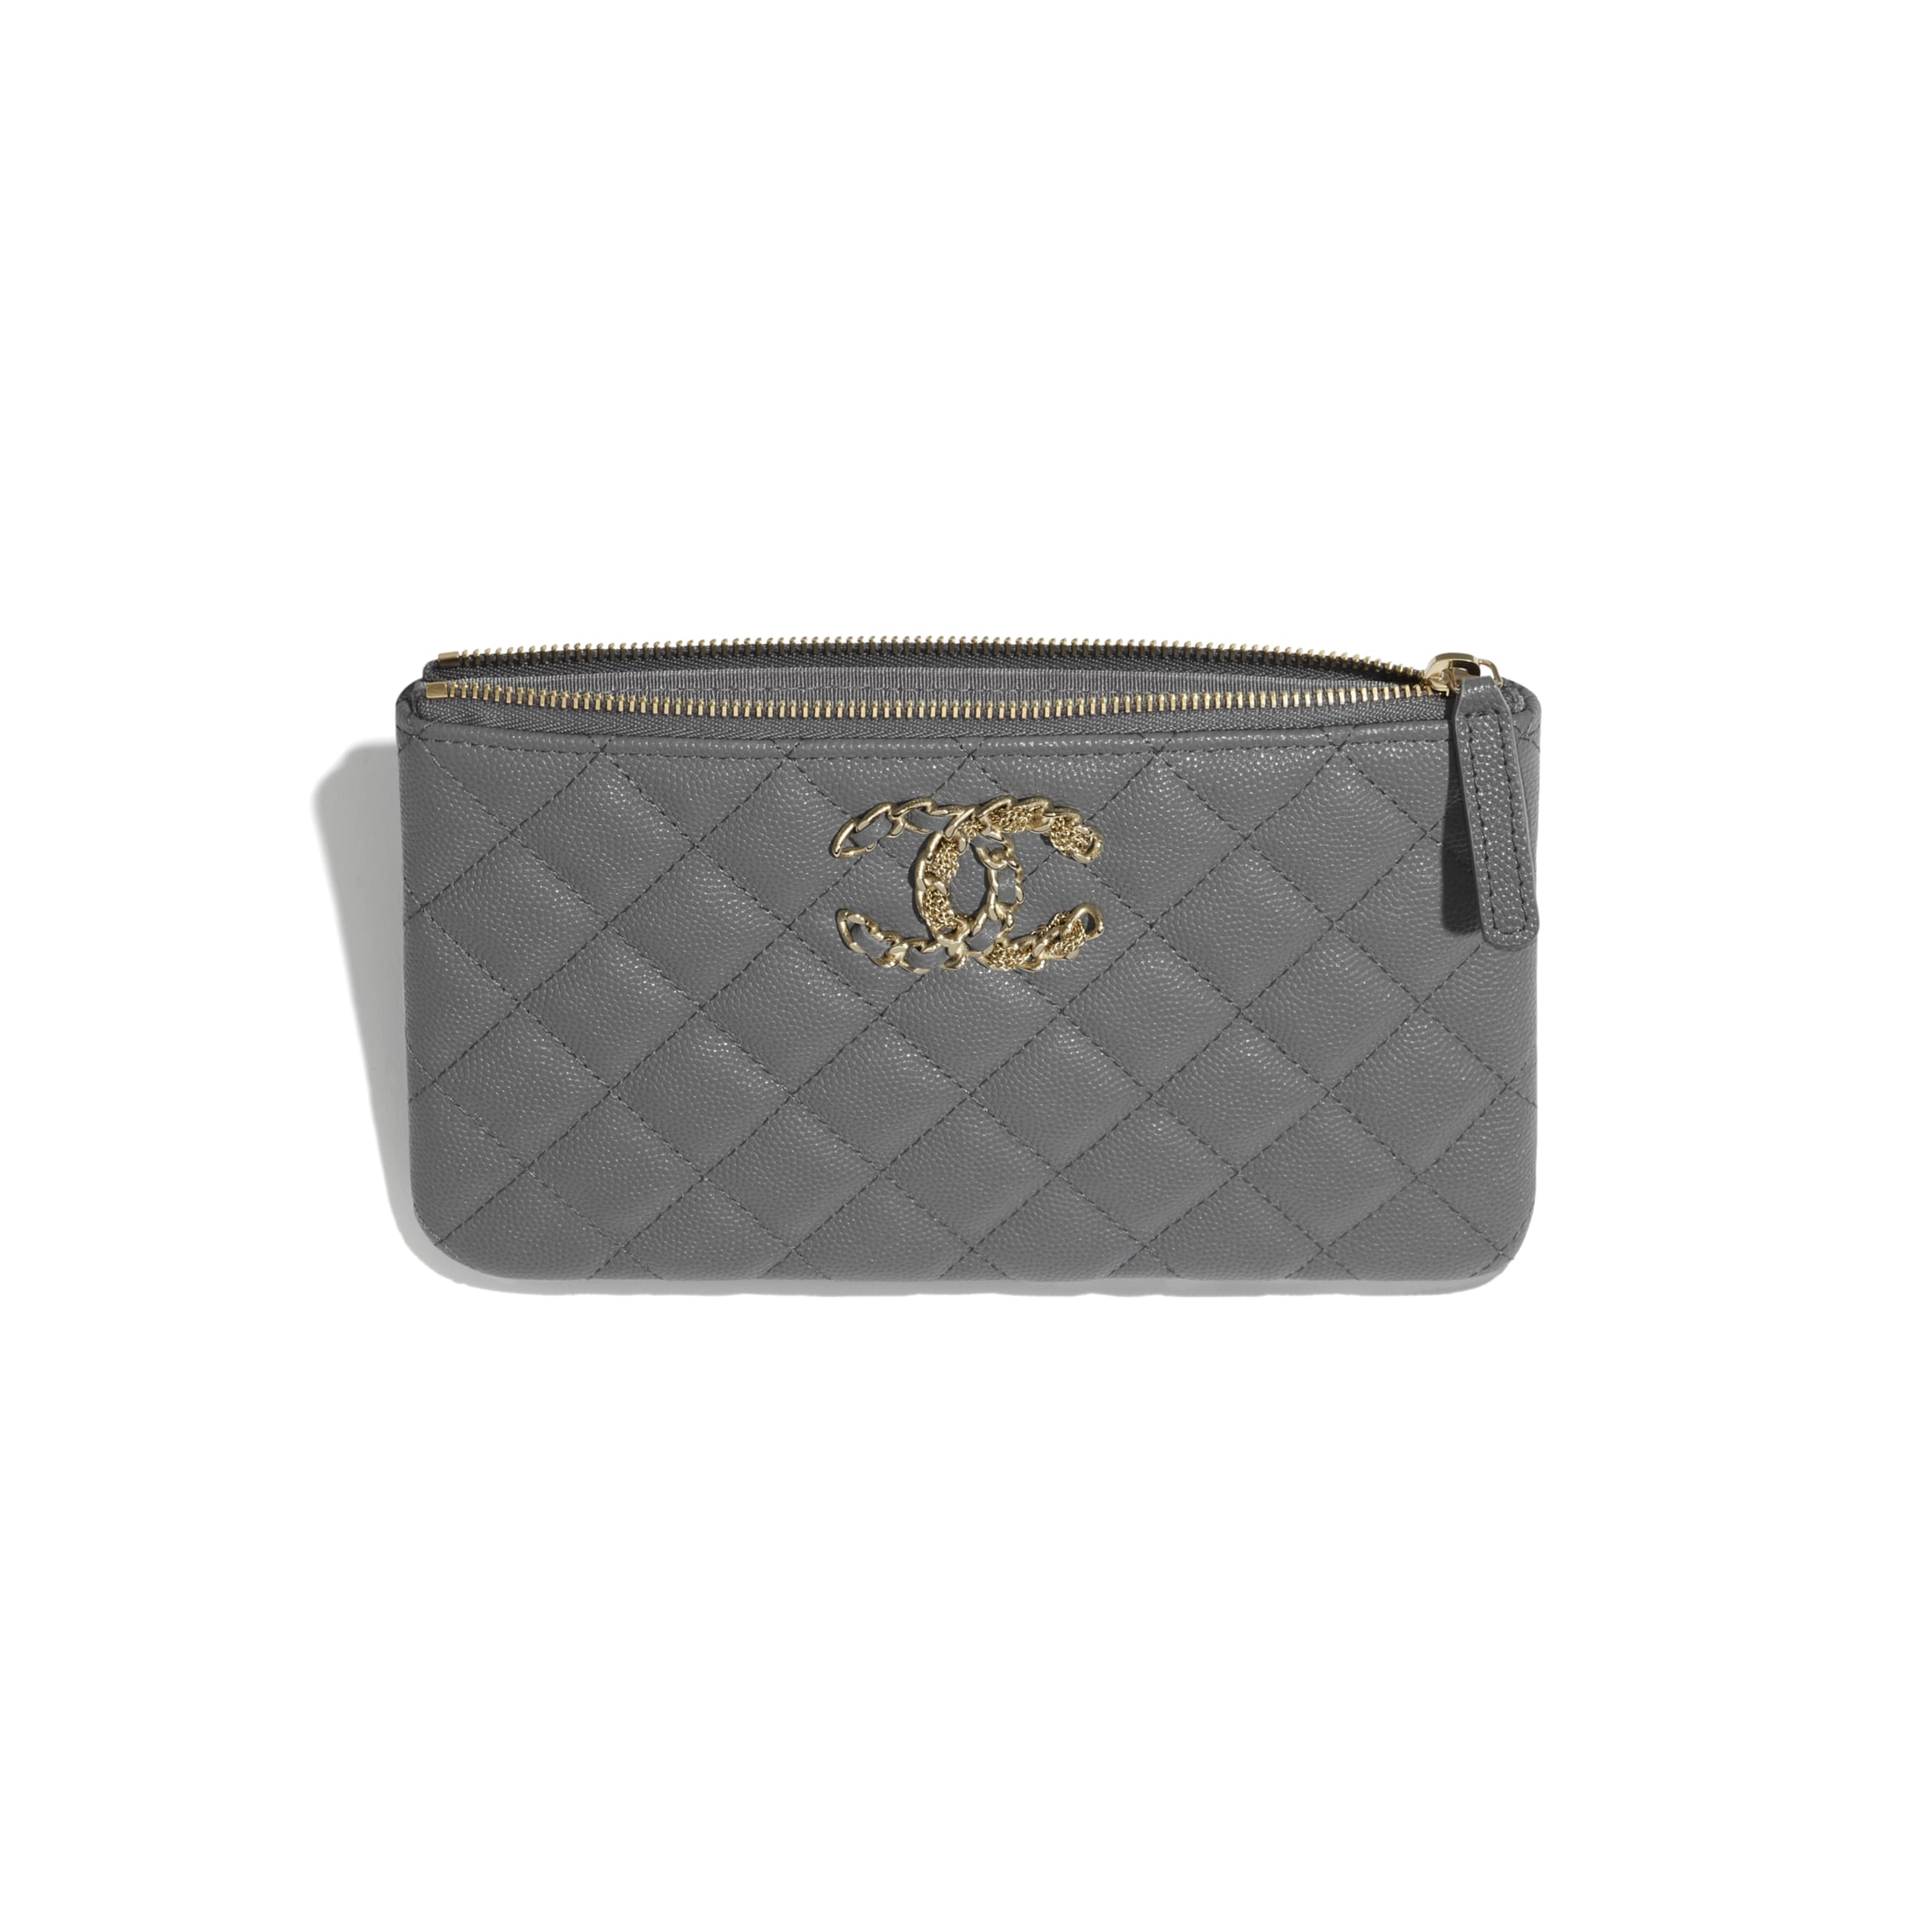 Small Pouch - Grey - Grained Calfskin & Gold-Tone Metal - CHANEL - Other view - see standard sized version